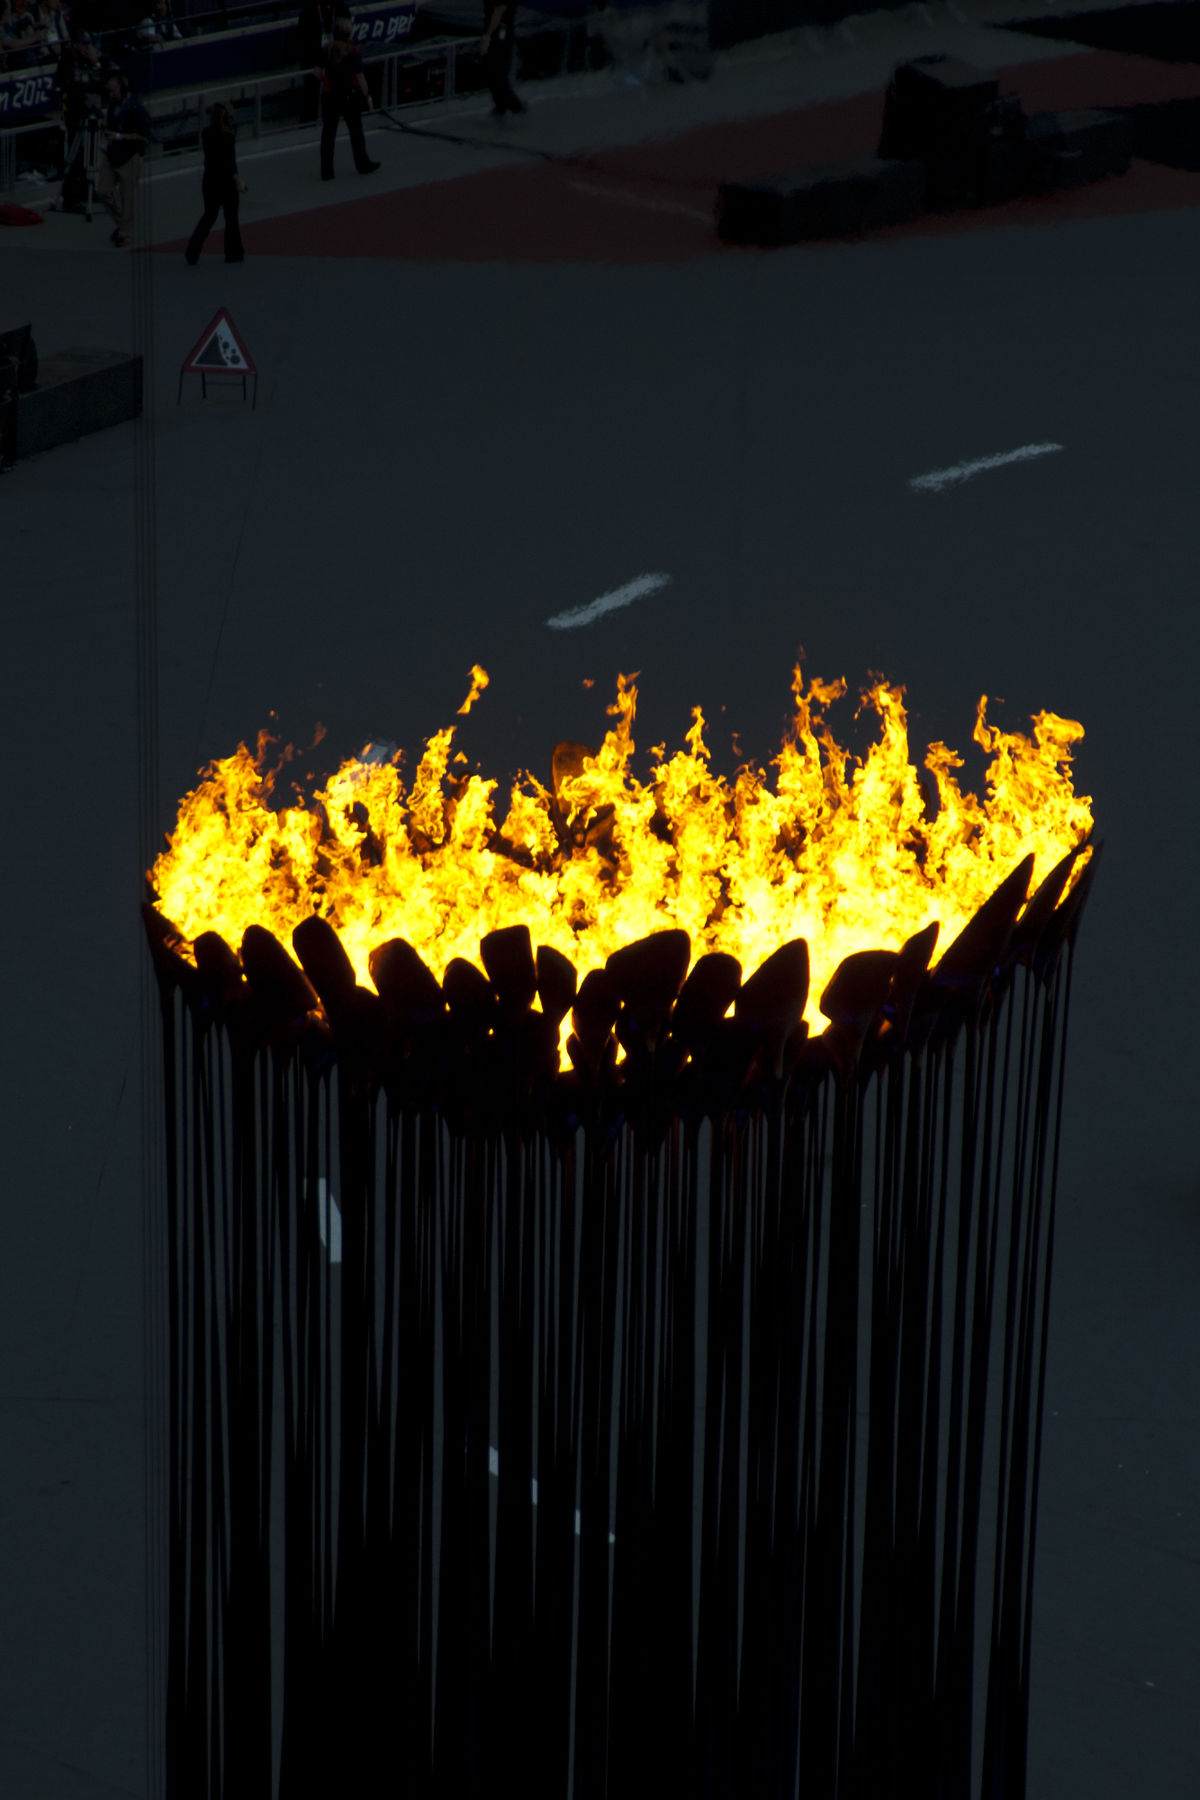 2012 summer olympics and paralympics cauldron wikipedia